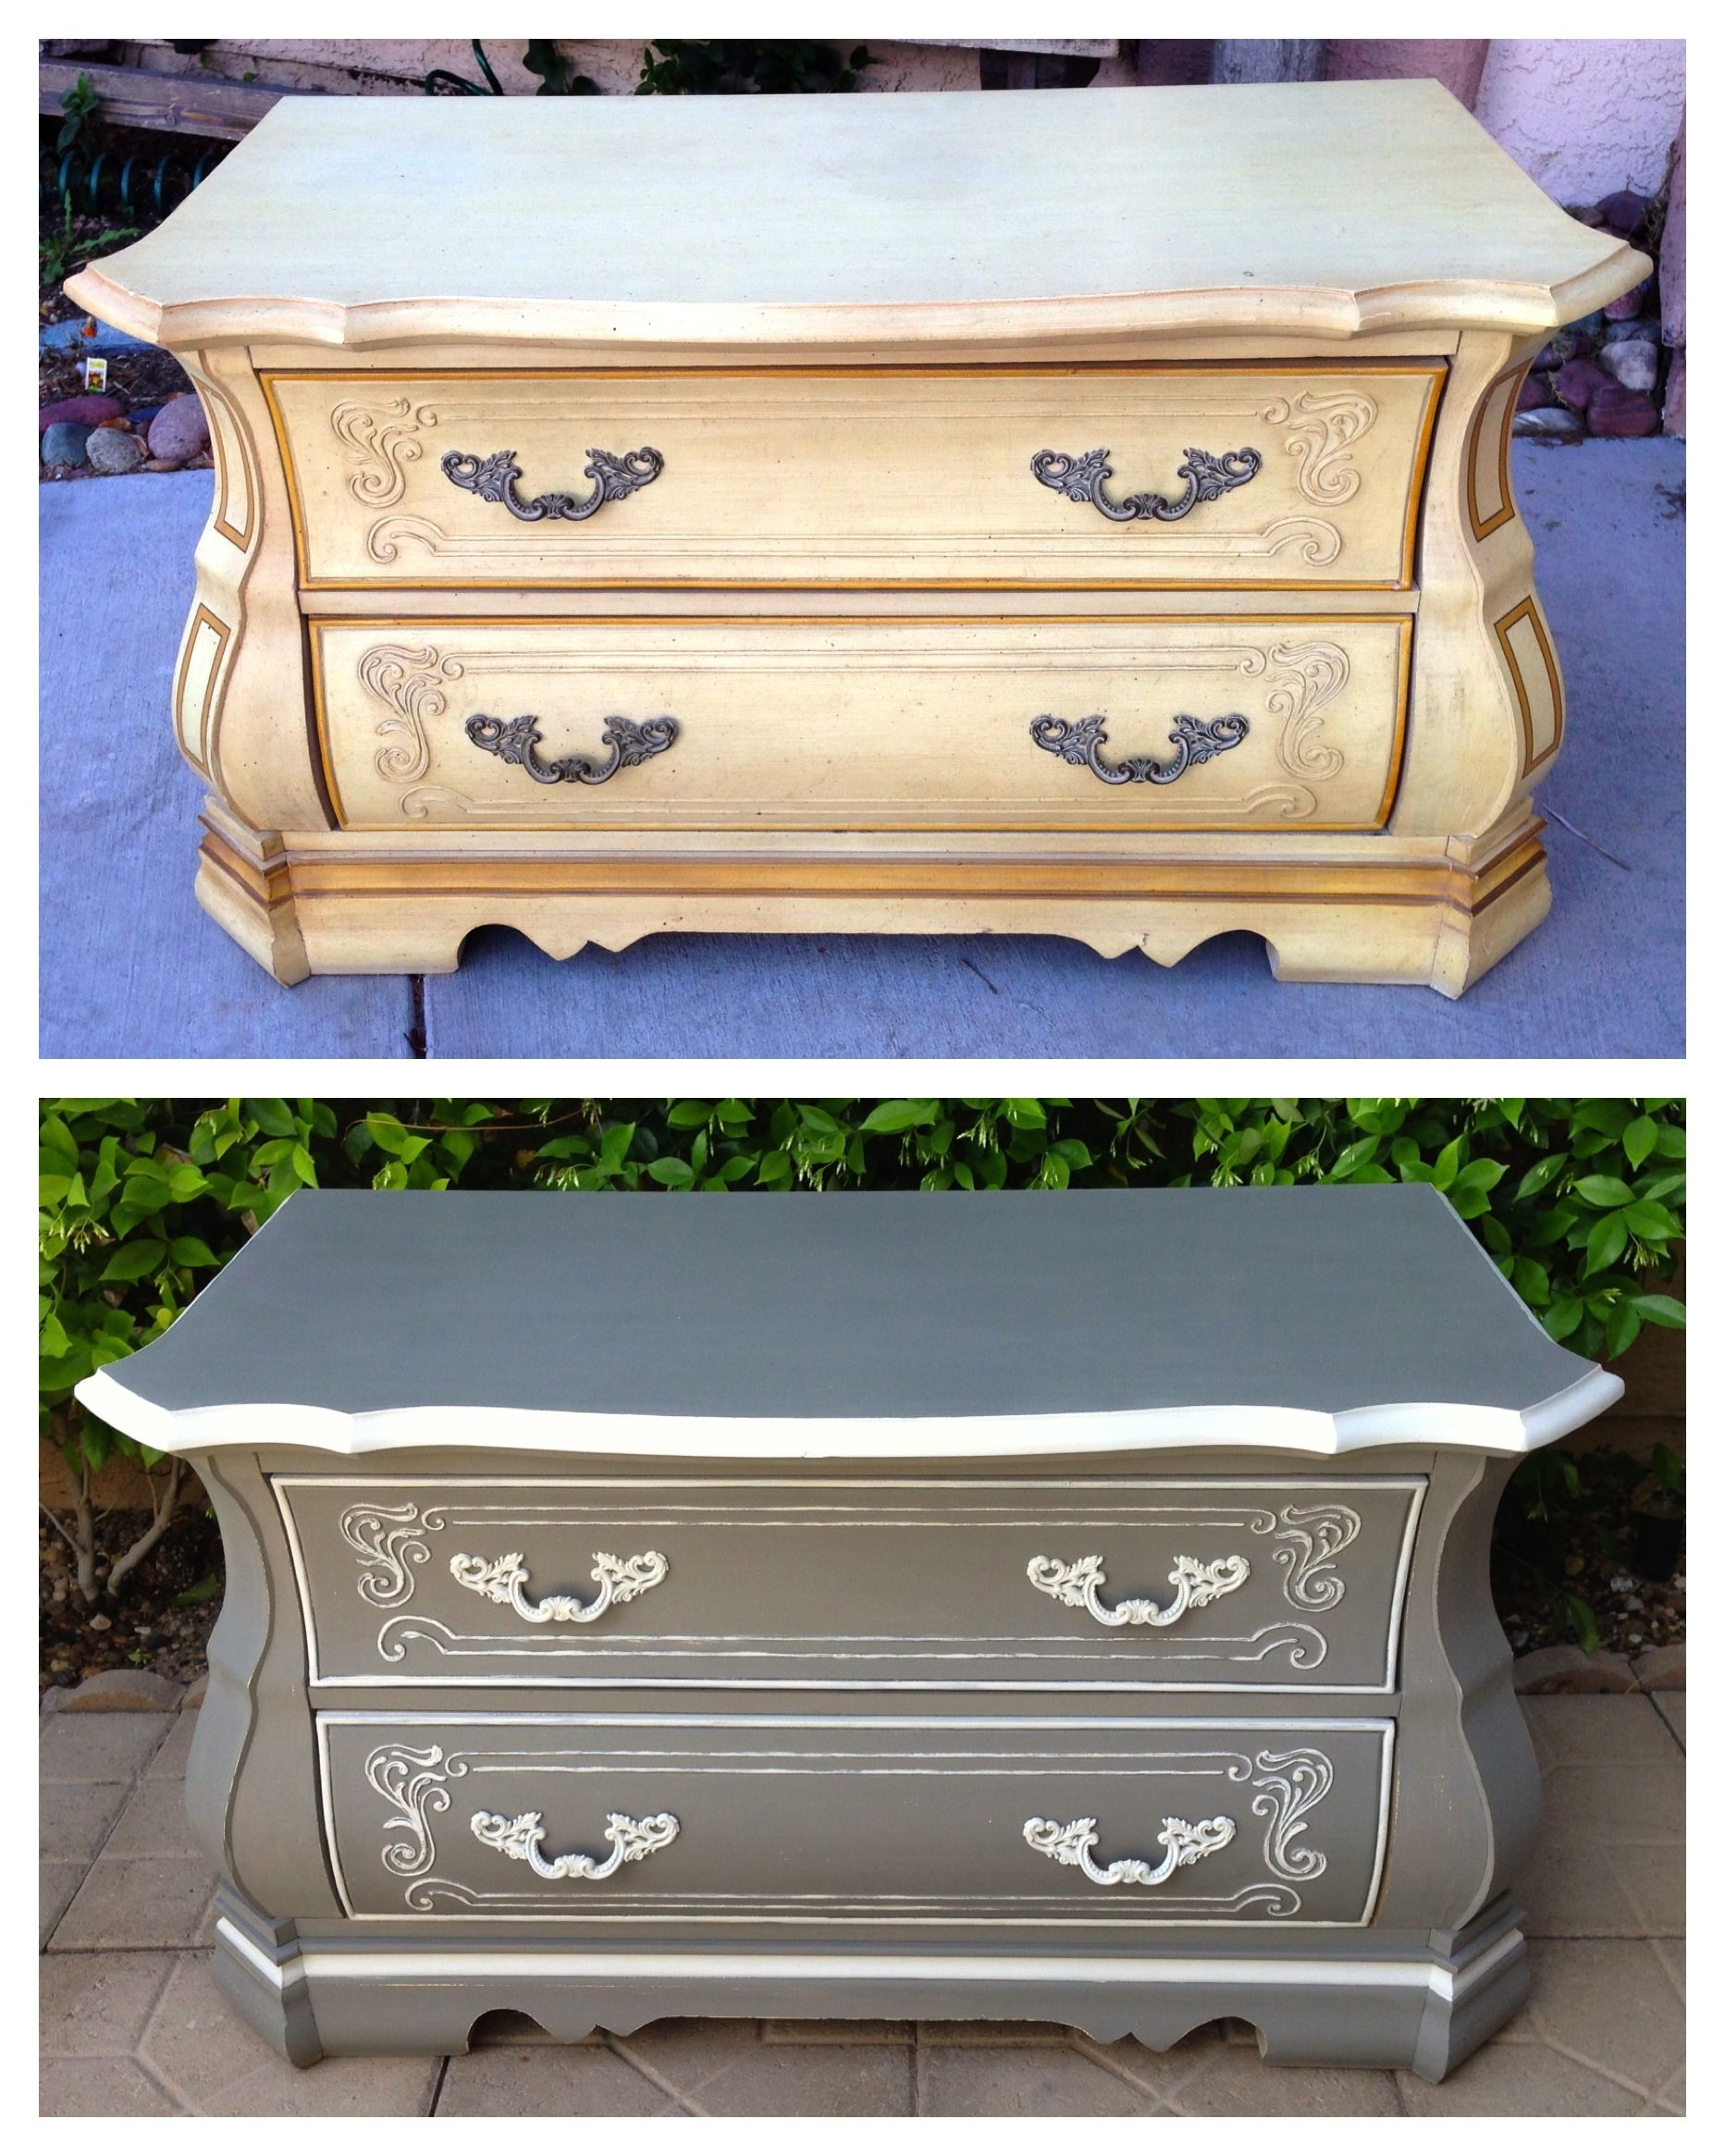 furniture refurbished. i love this refurbished style furniture